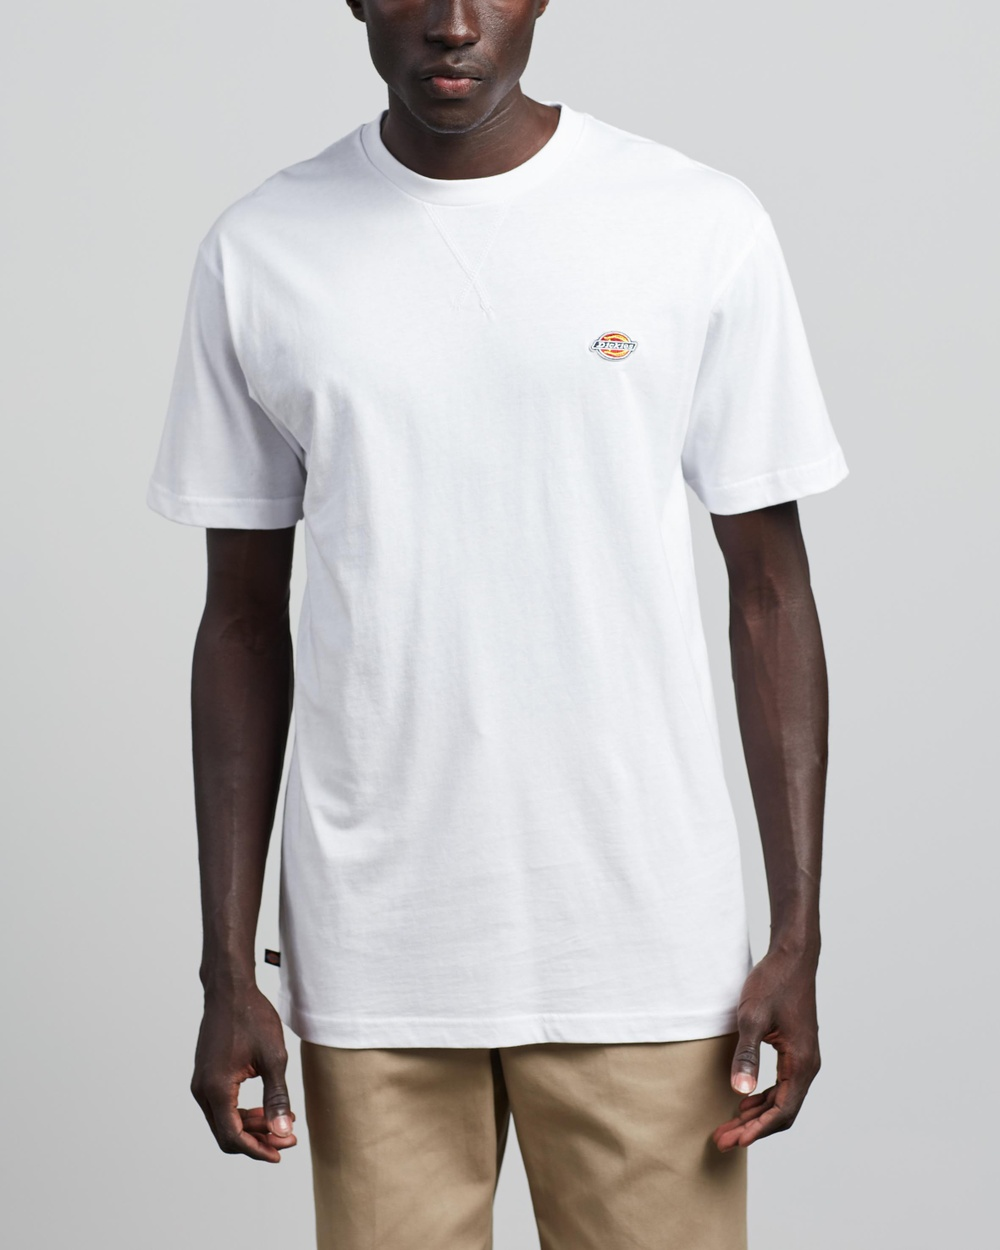 Dickies - H.S Rockwood Tee - T-Shirts & Singlets (White) H.S Rockwood Tee